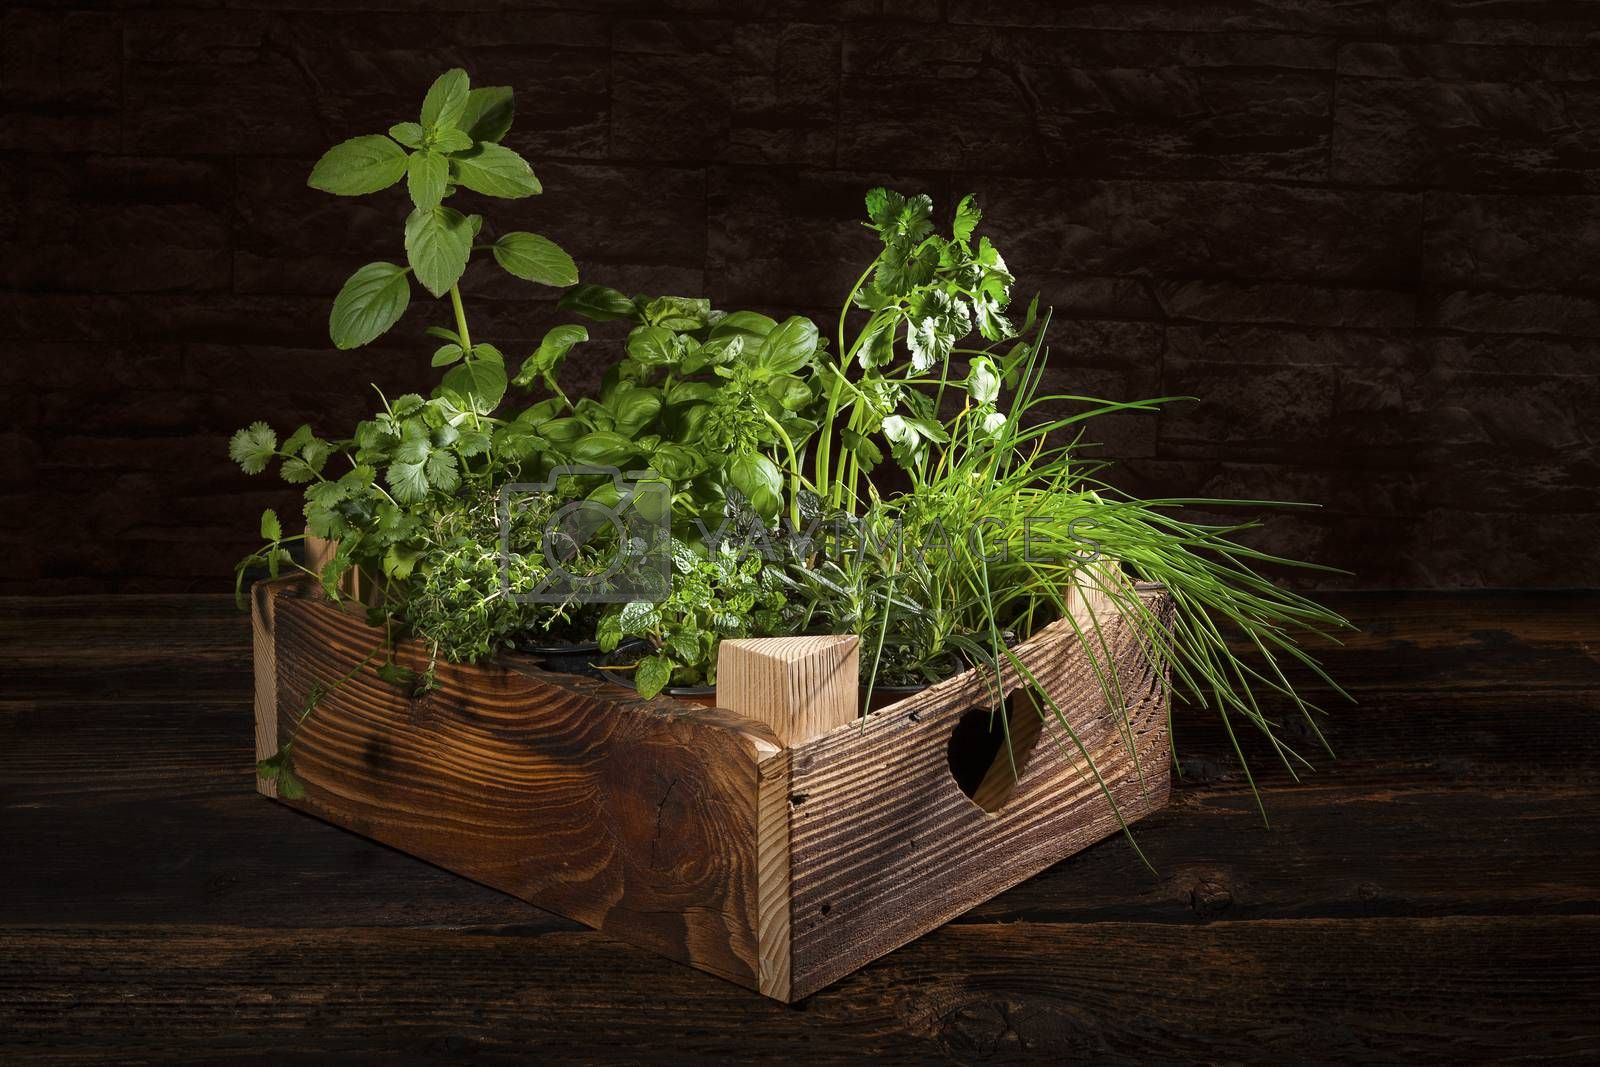 Herbs in wooden crate. by eskymaks